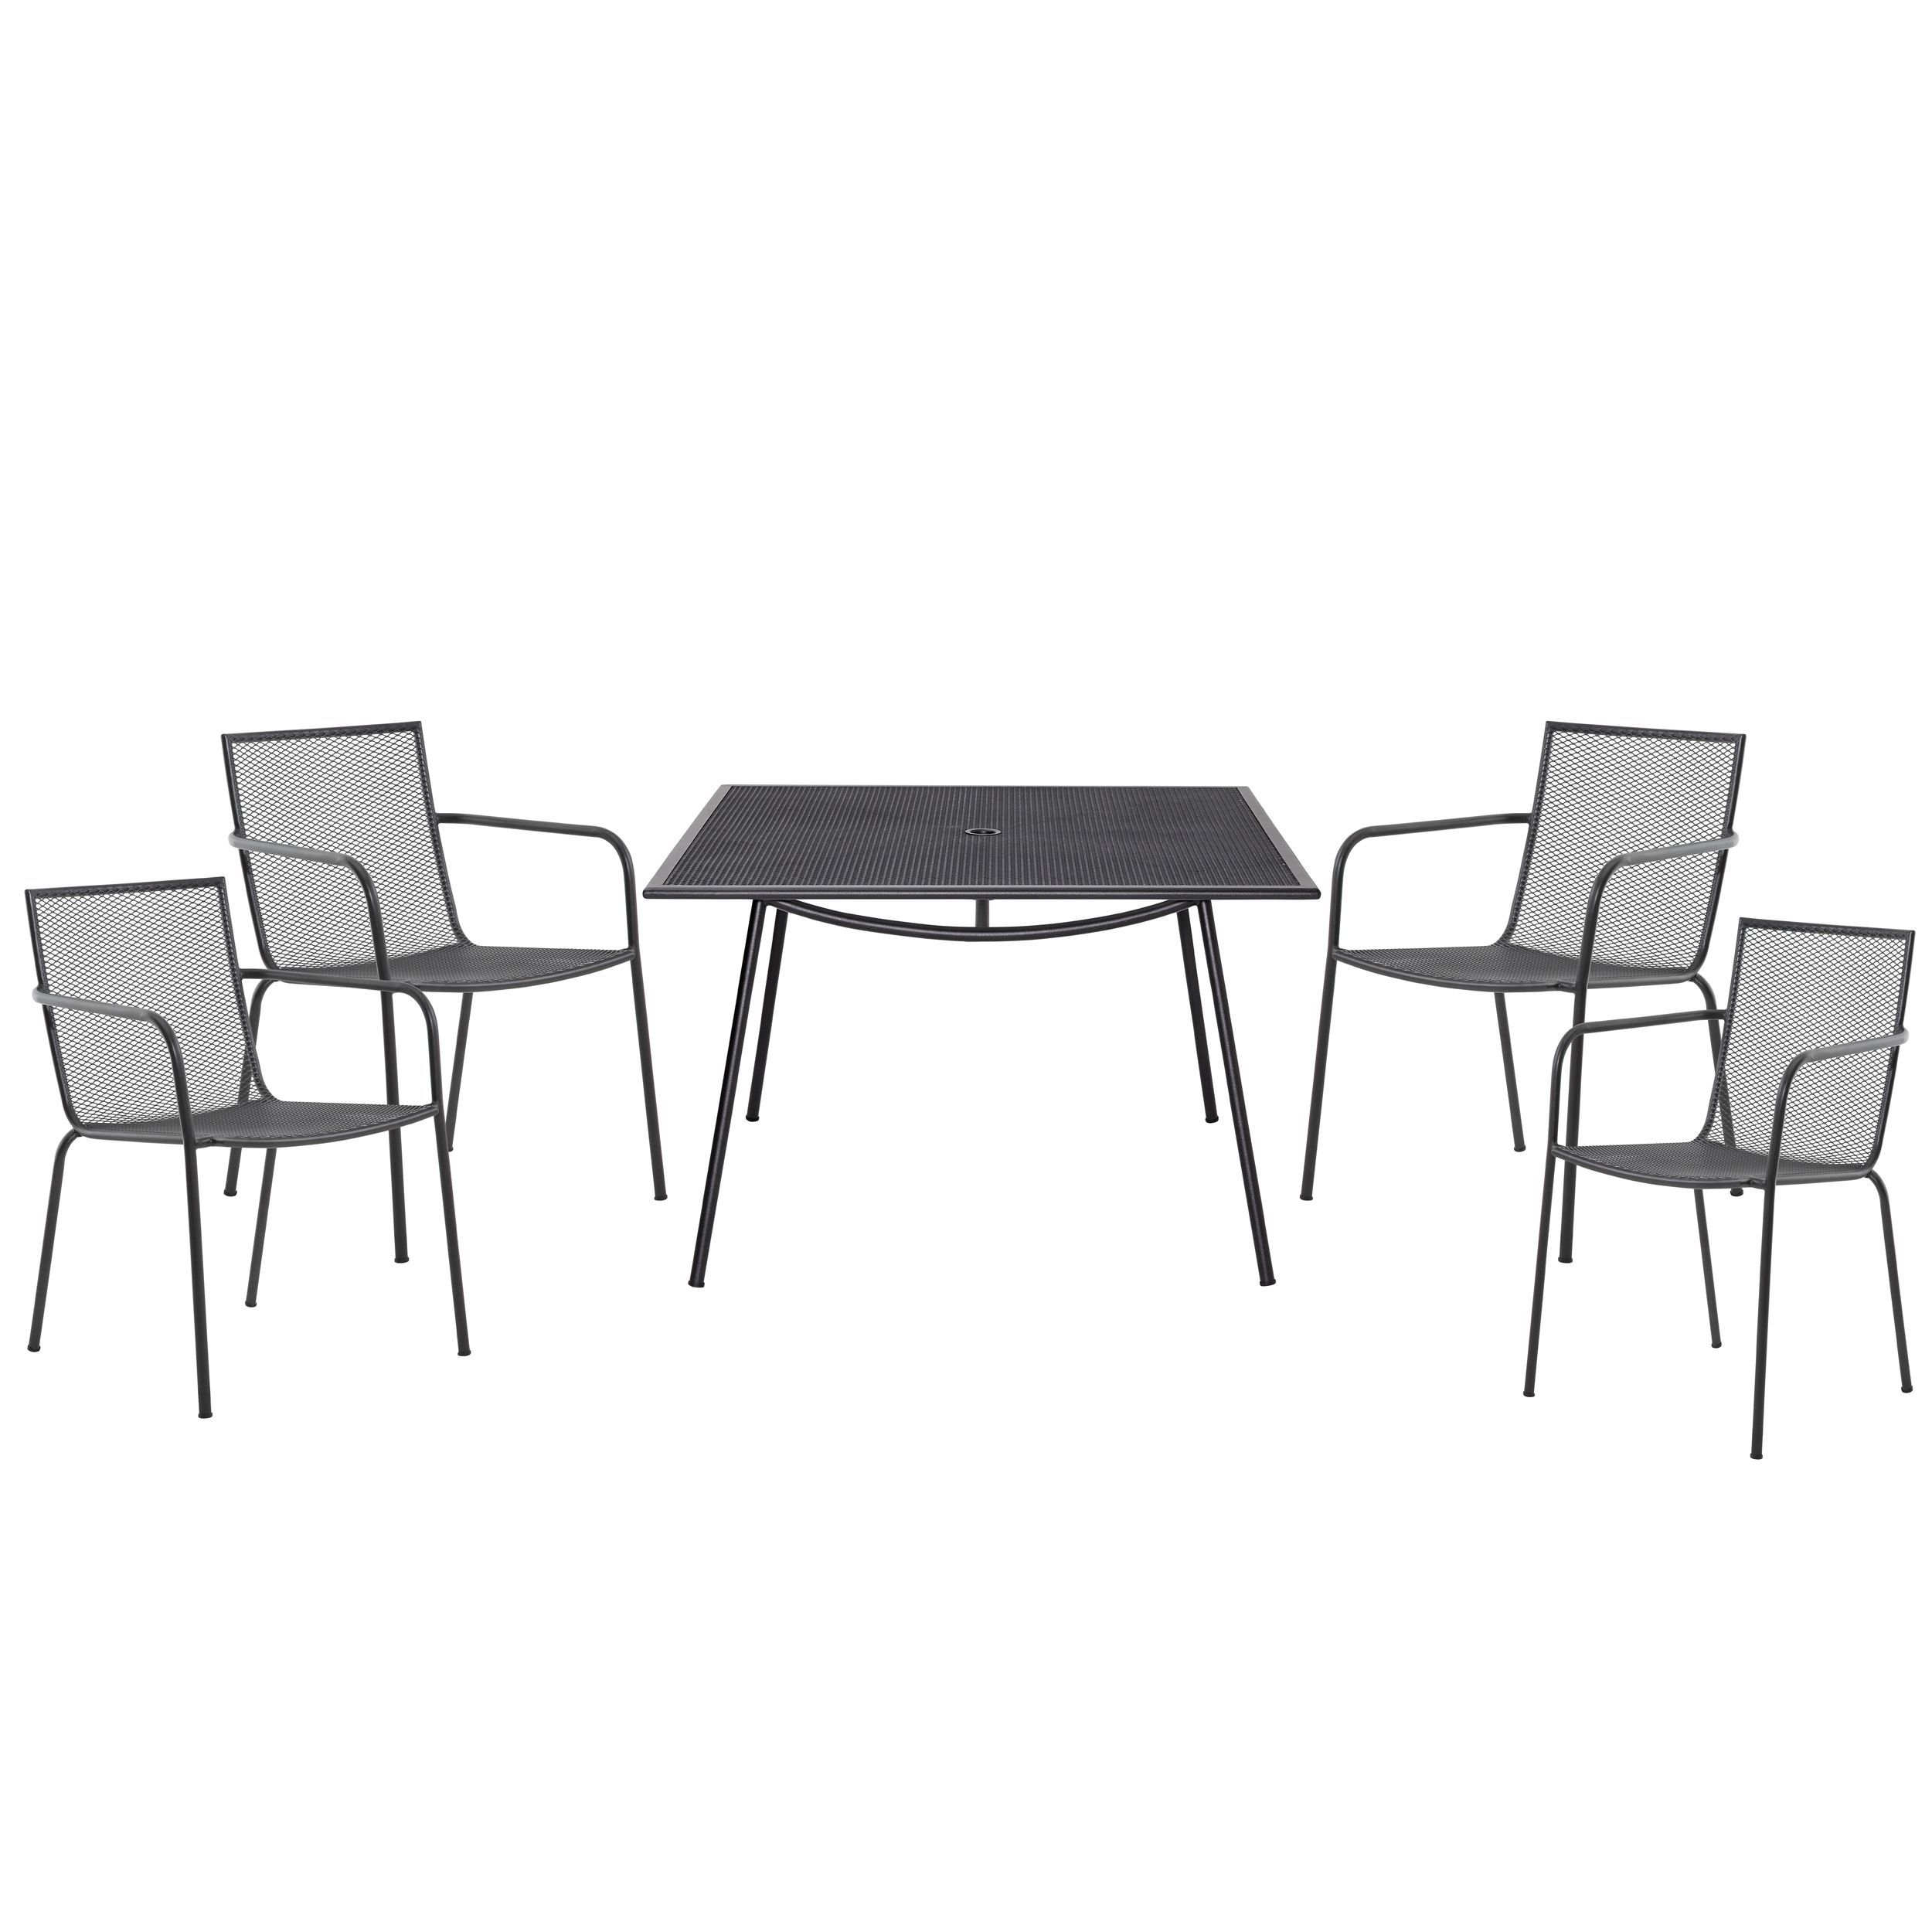 Kitchen Stools Adelaide: Adelaide Metal 4 Seater Dining Set